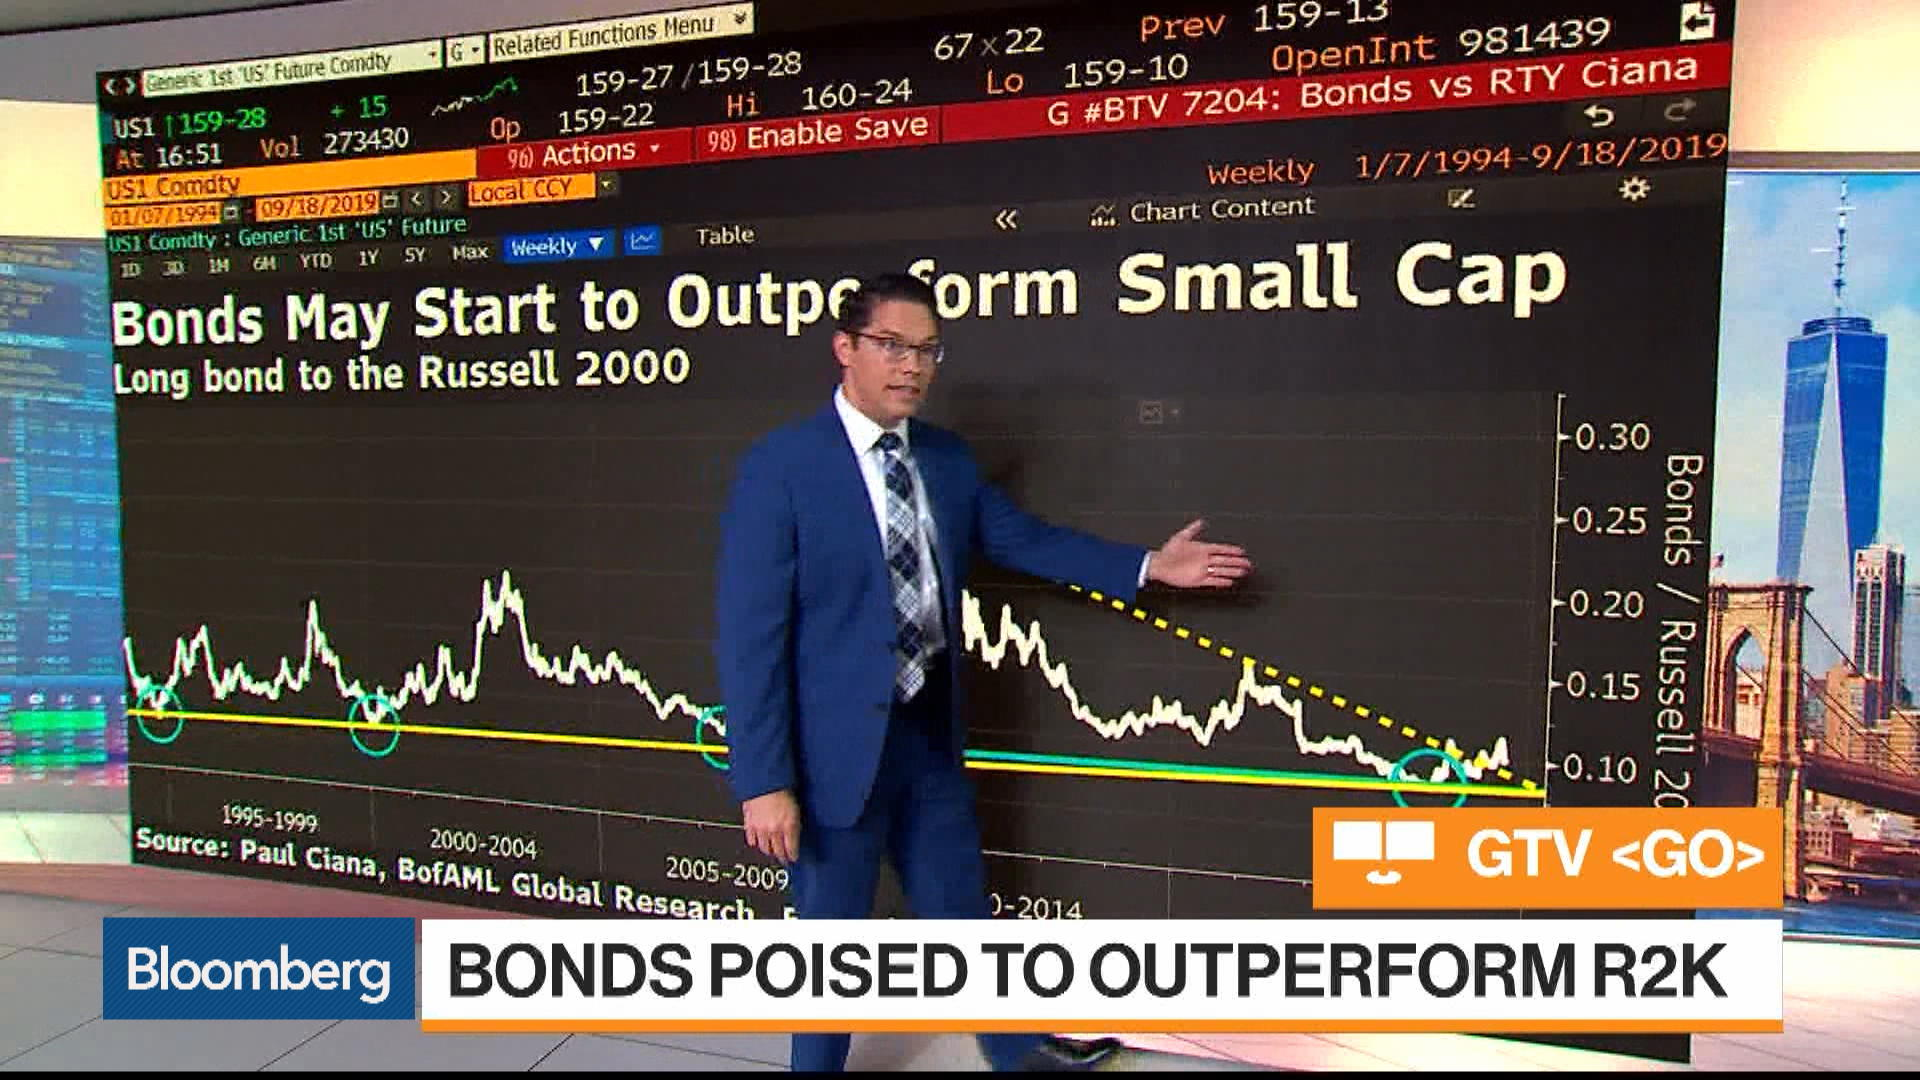 Bonds May Start to Outperform Small Caps: Paul Ciana